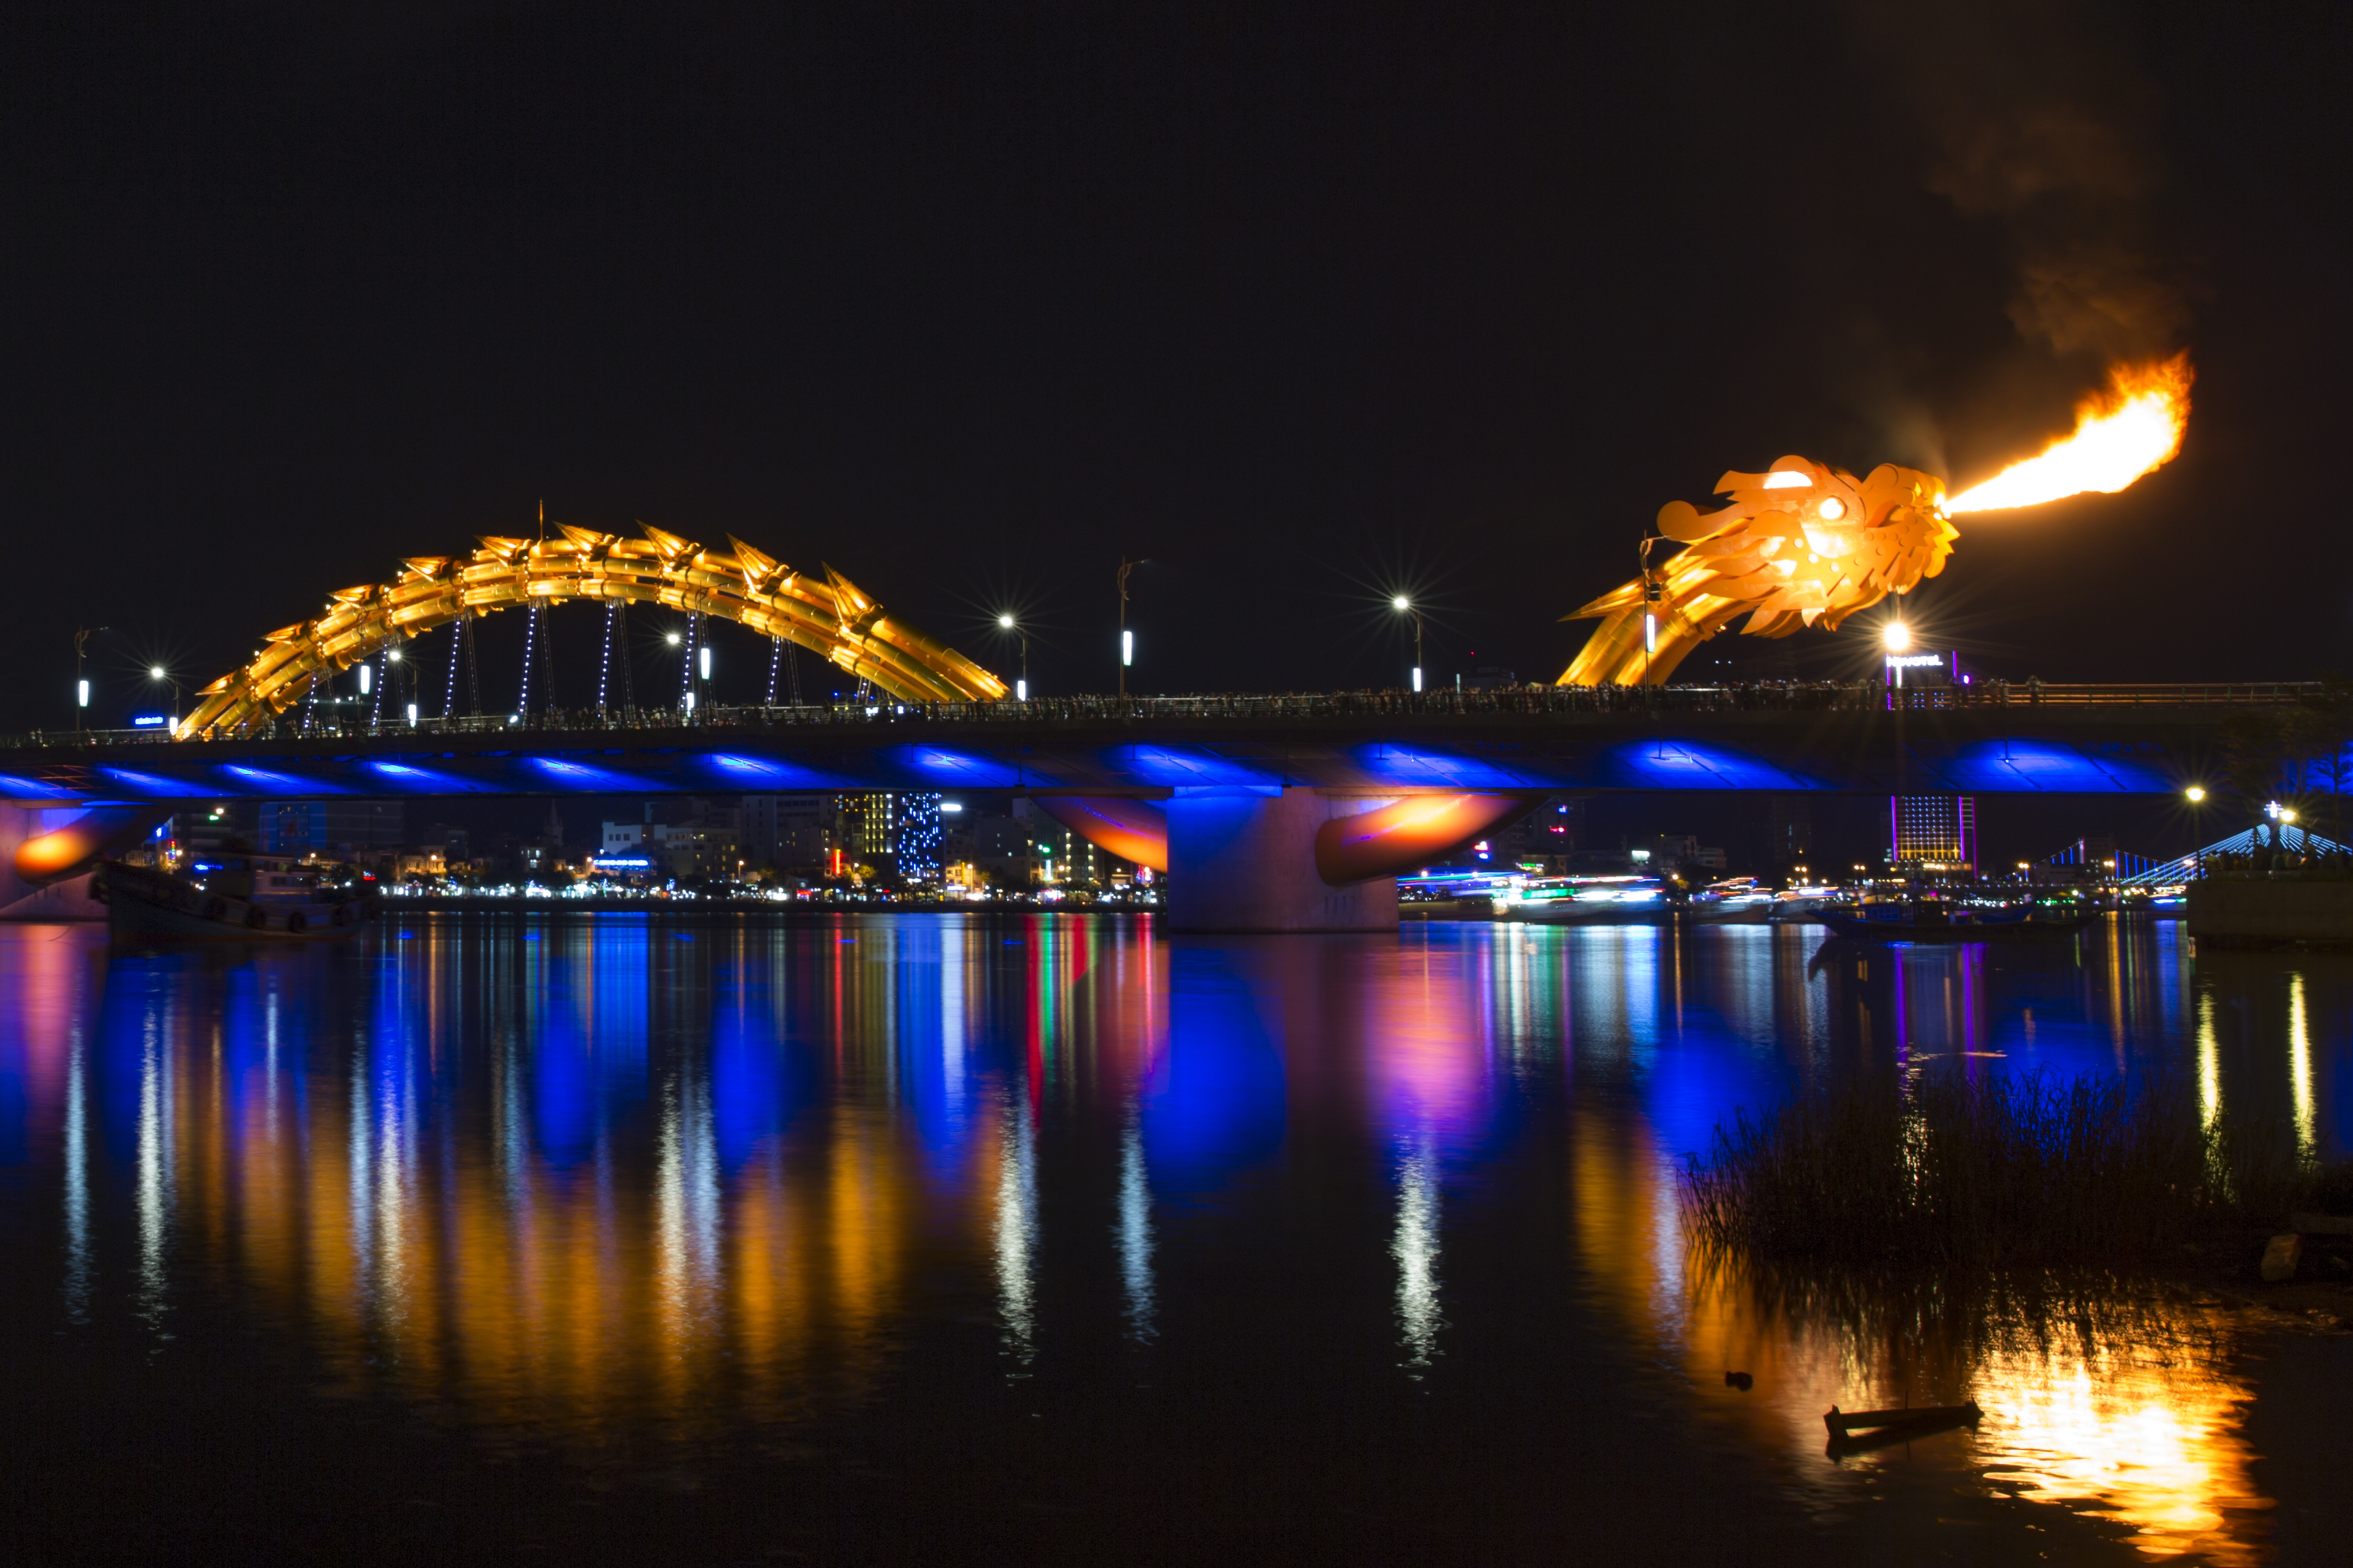 Dragon bridge da nangs fiery new success symbol cnn travel biocorpaavc